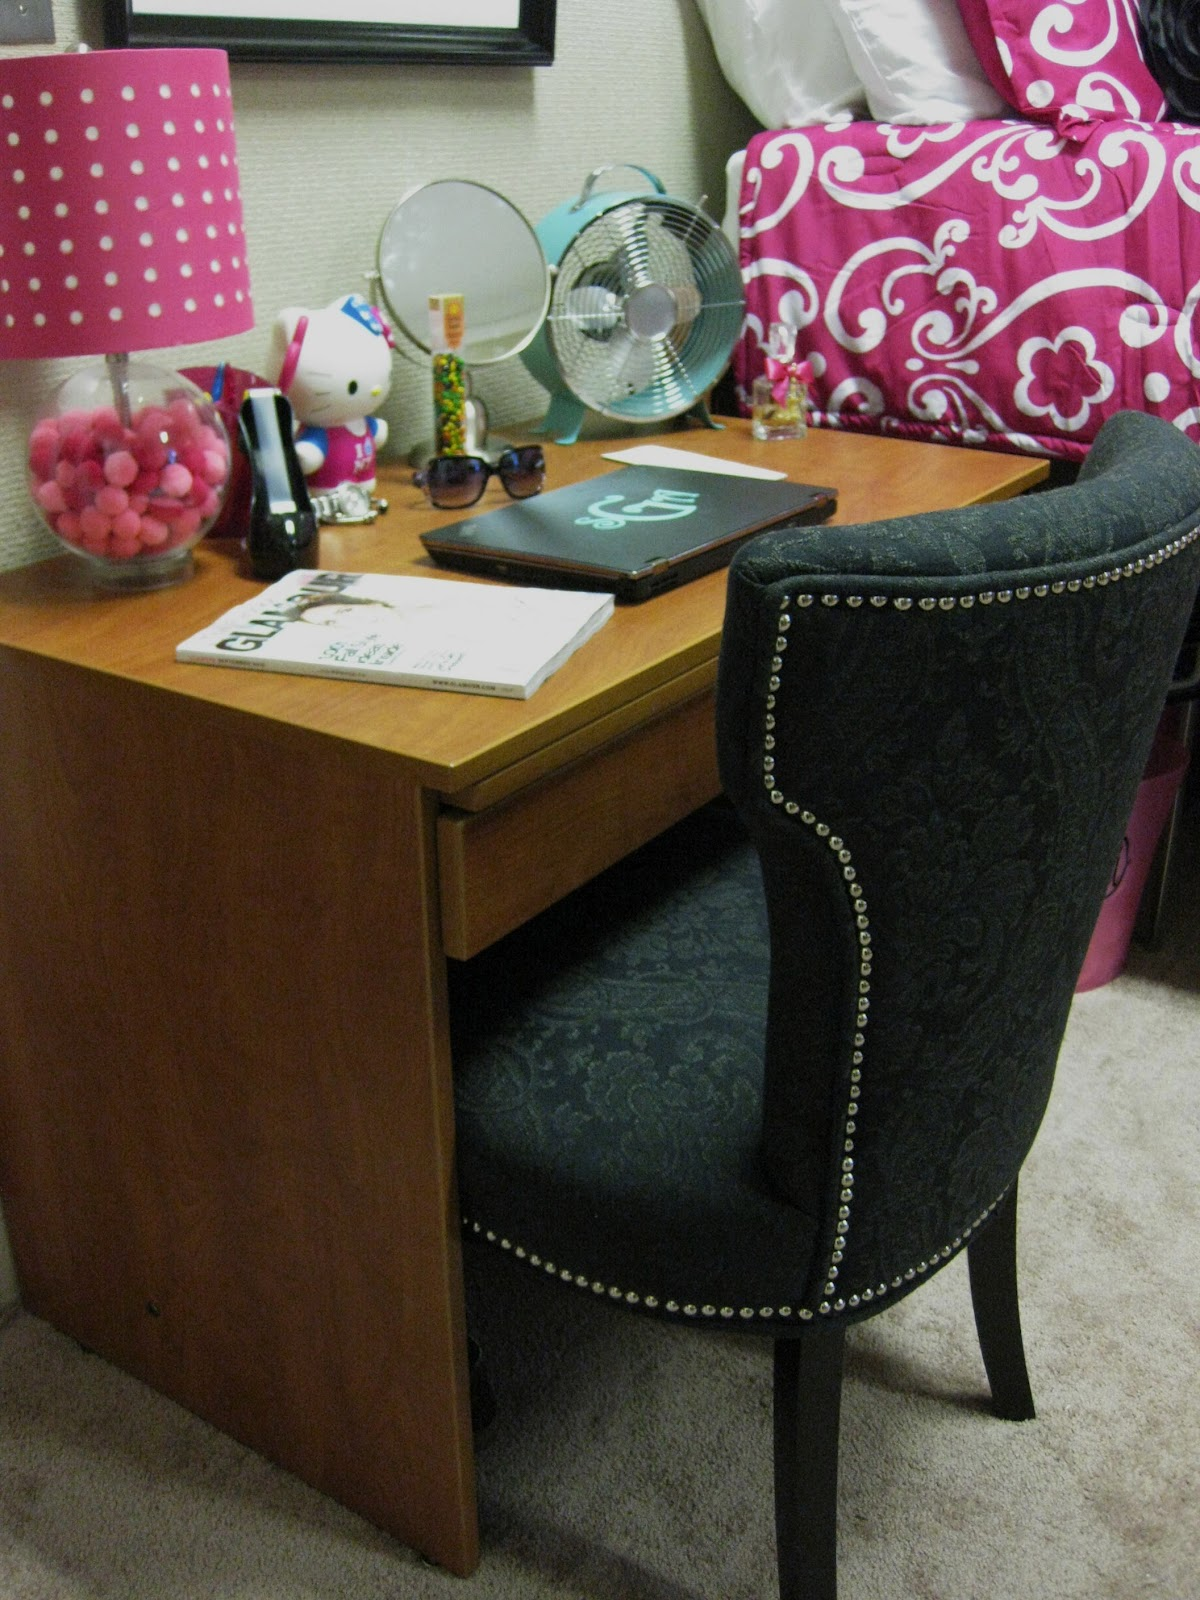 Cynthia Rowley Chairs At Marshalls Swing Chair Pics Ramblings Of A Southern Girl Girlie Dorm Decorating